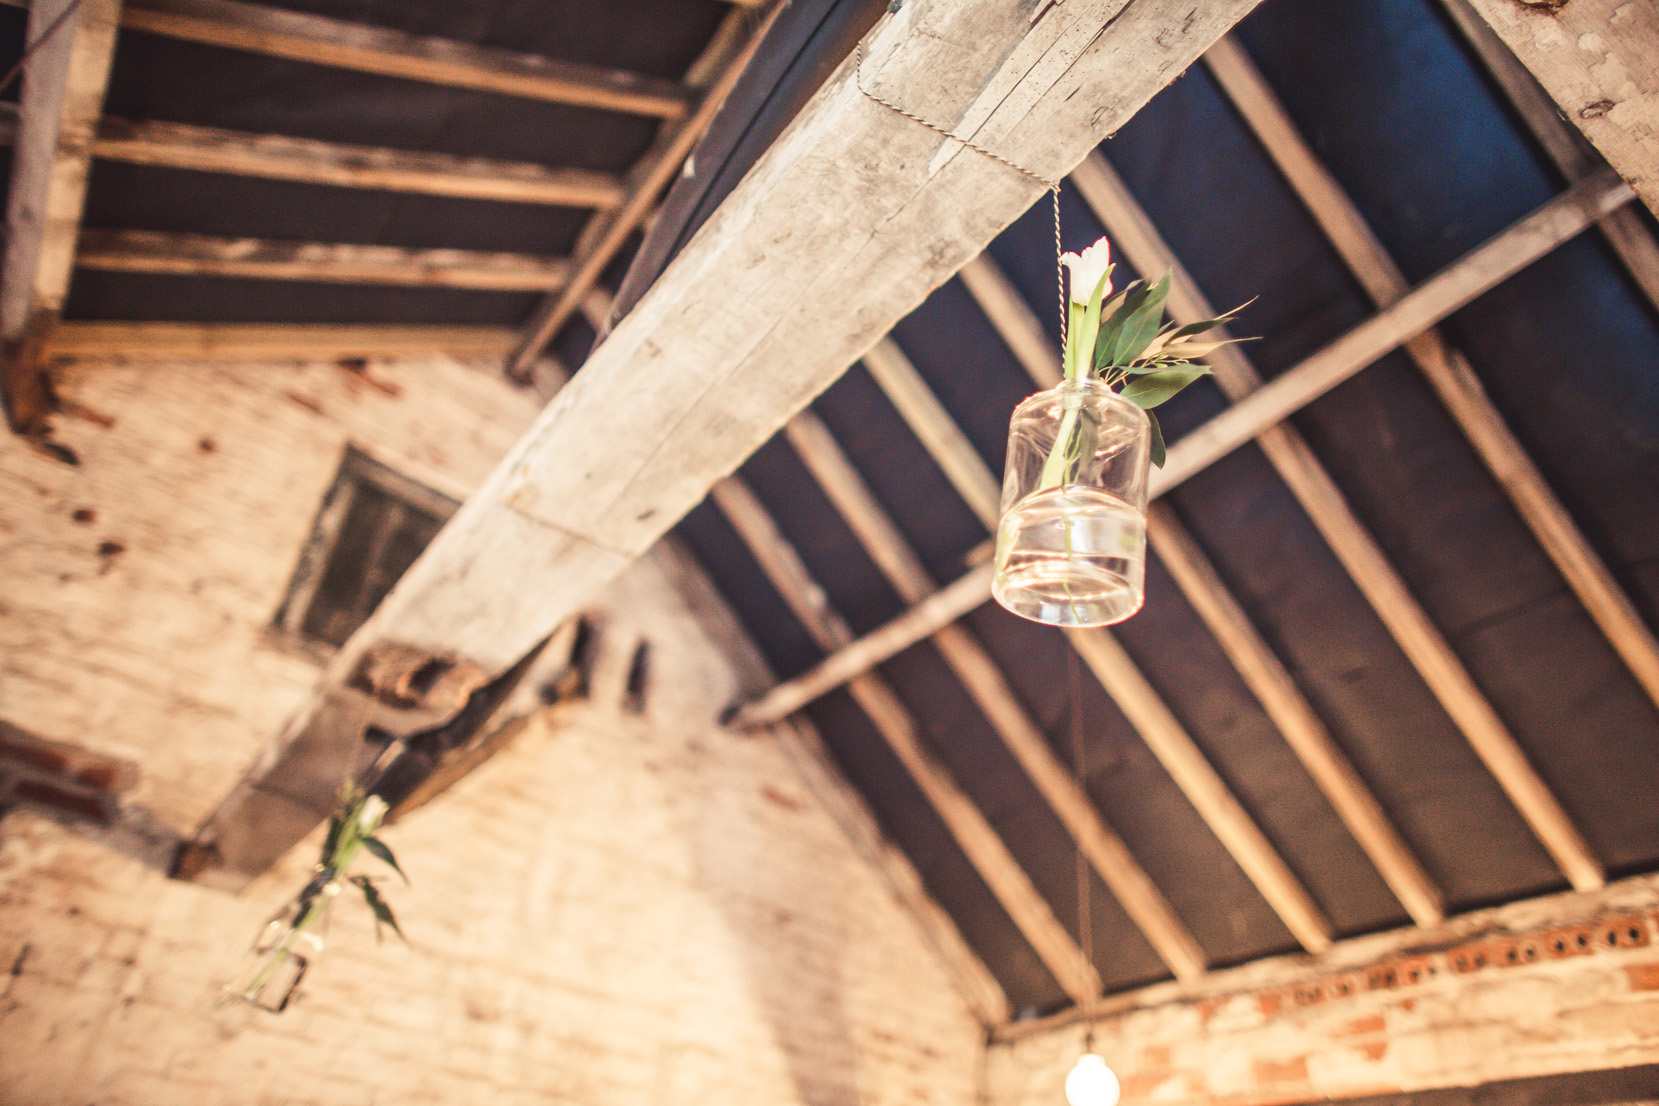 Hanging Jars at The Normans. Photo by www.inspirephotos.co.uk